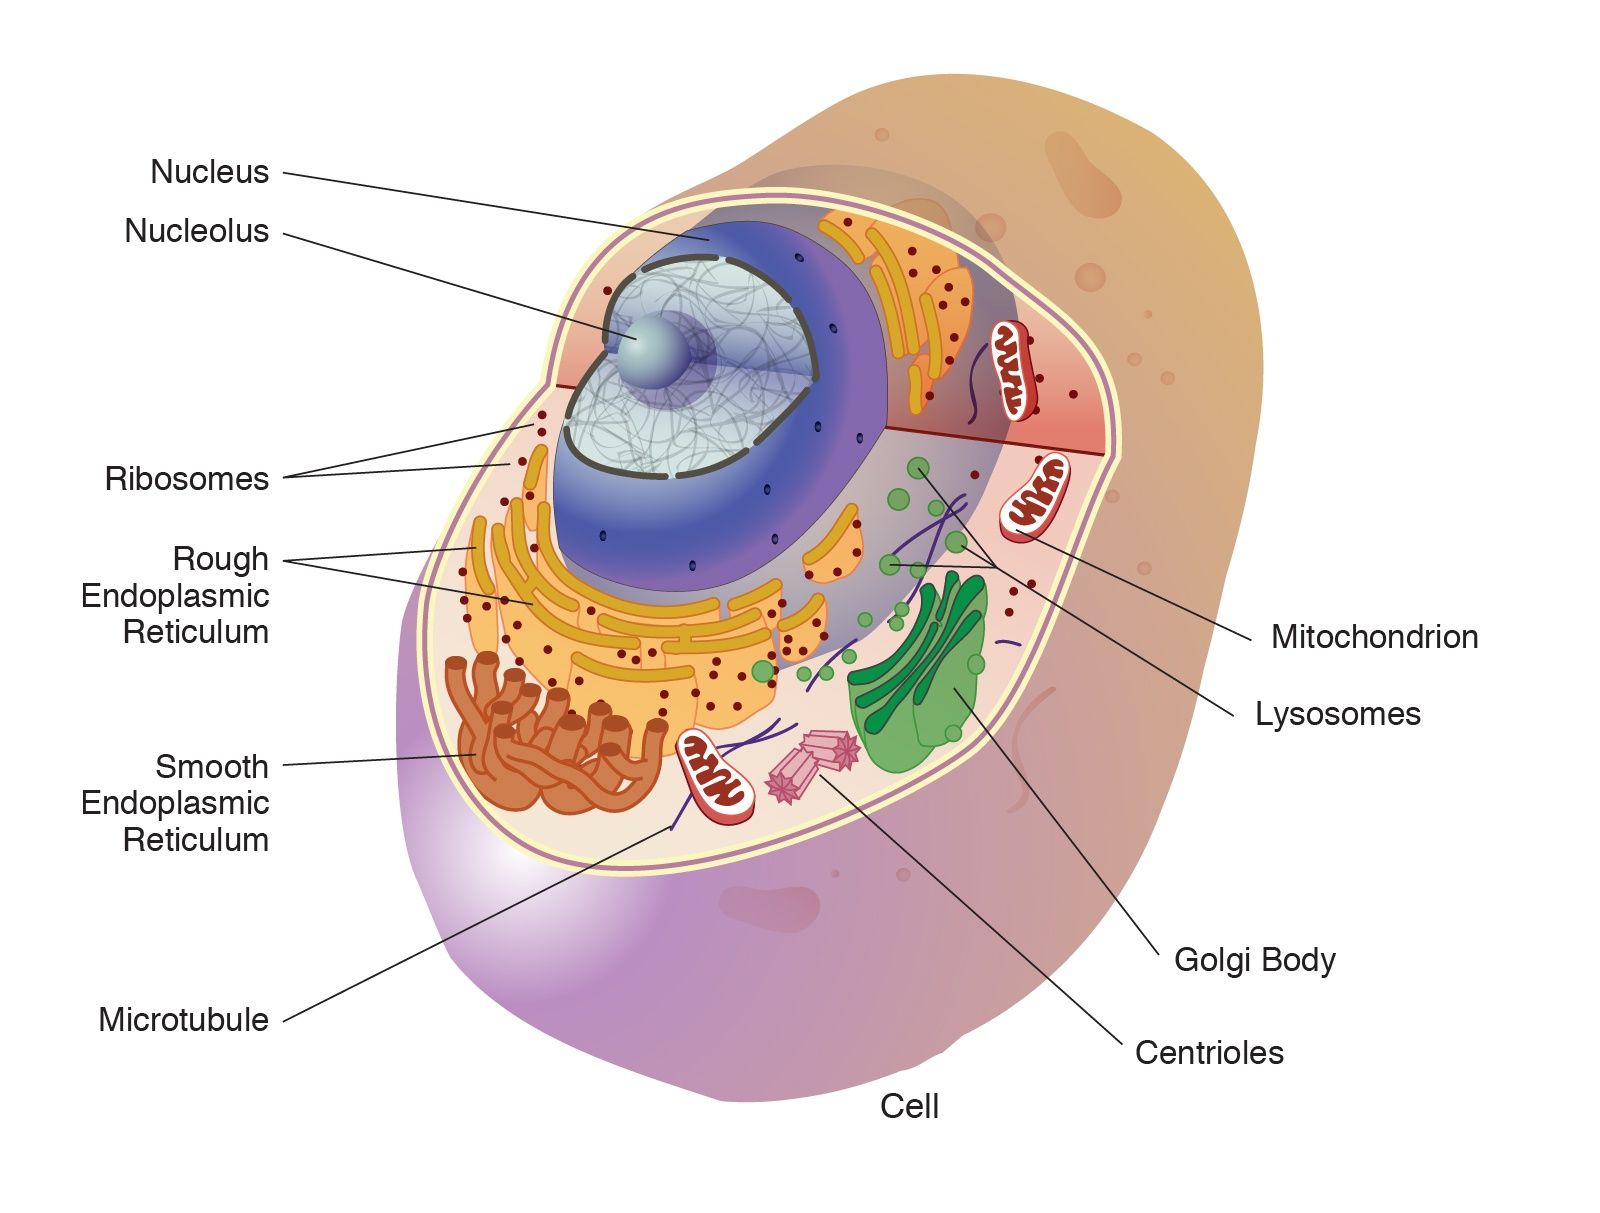 All about Human Cells - Cell Organelles